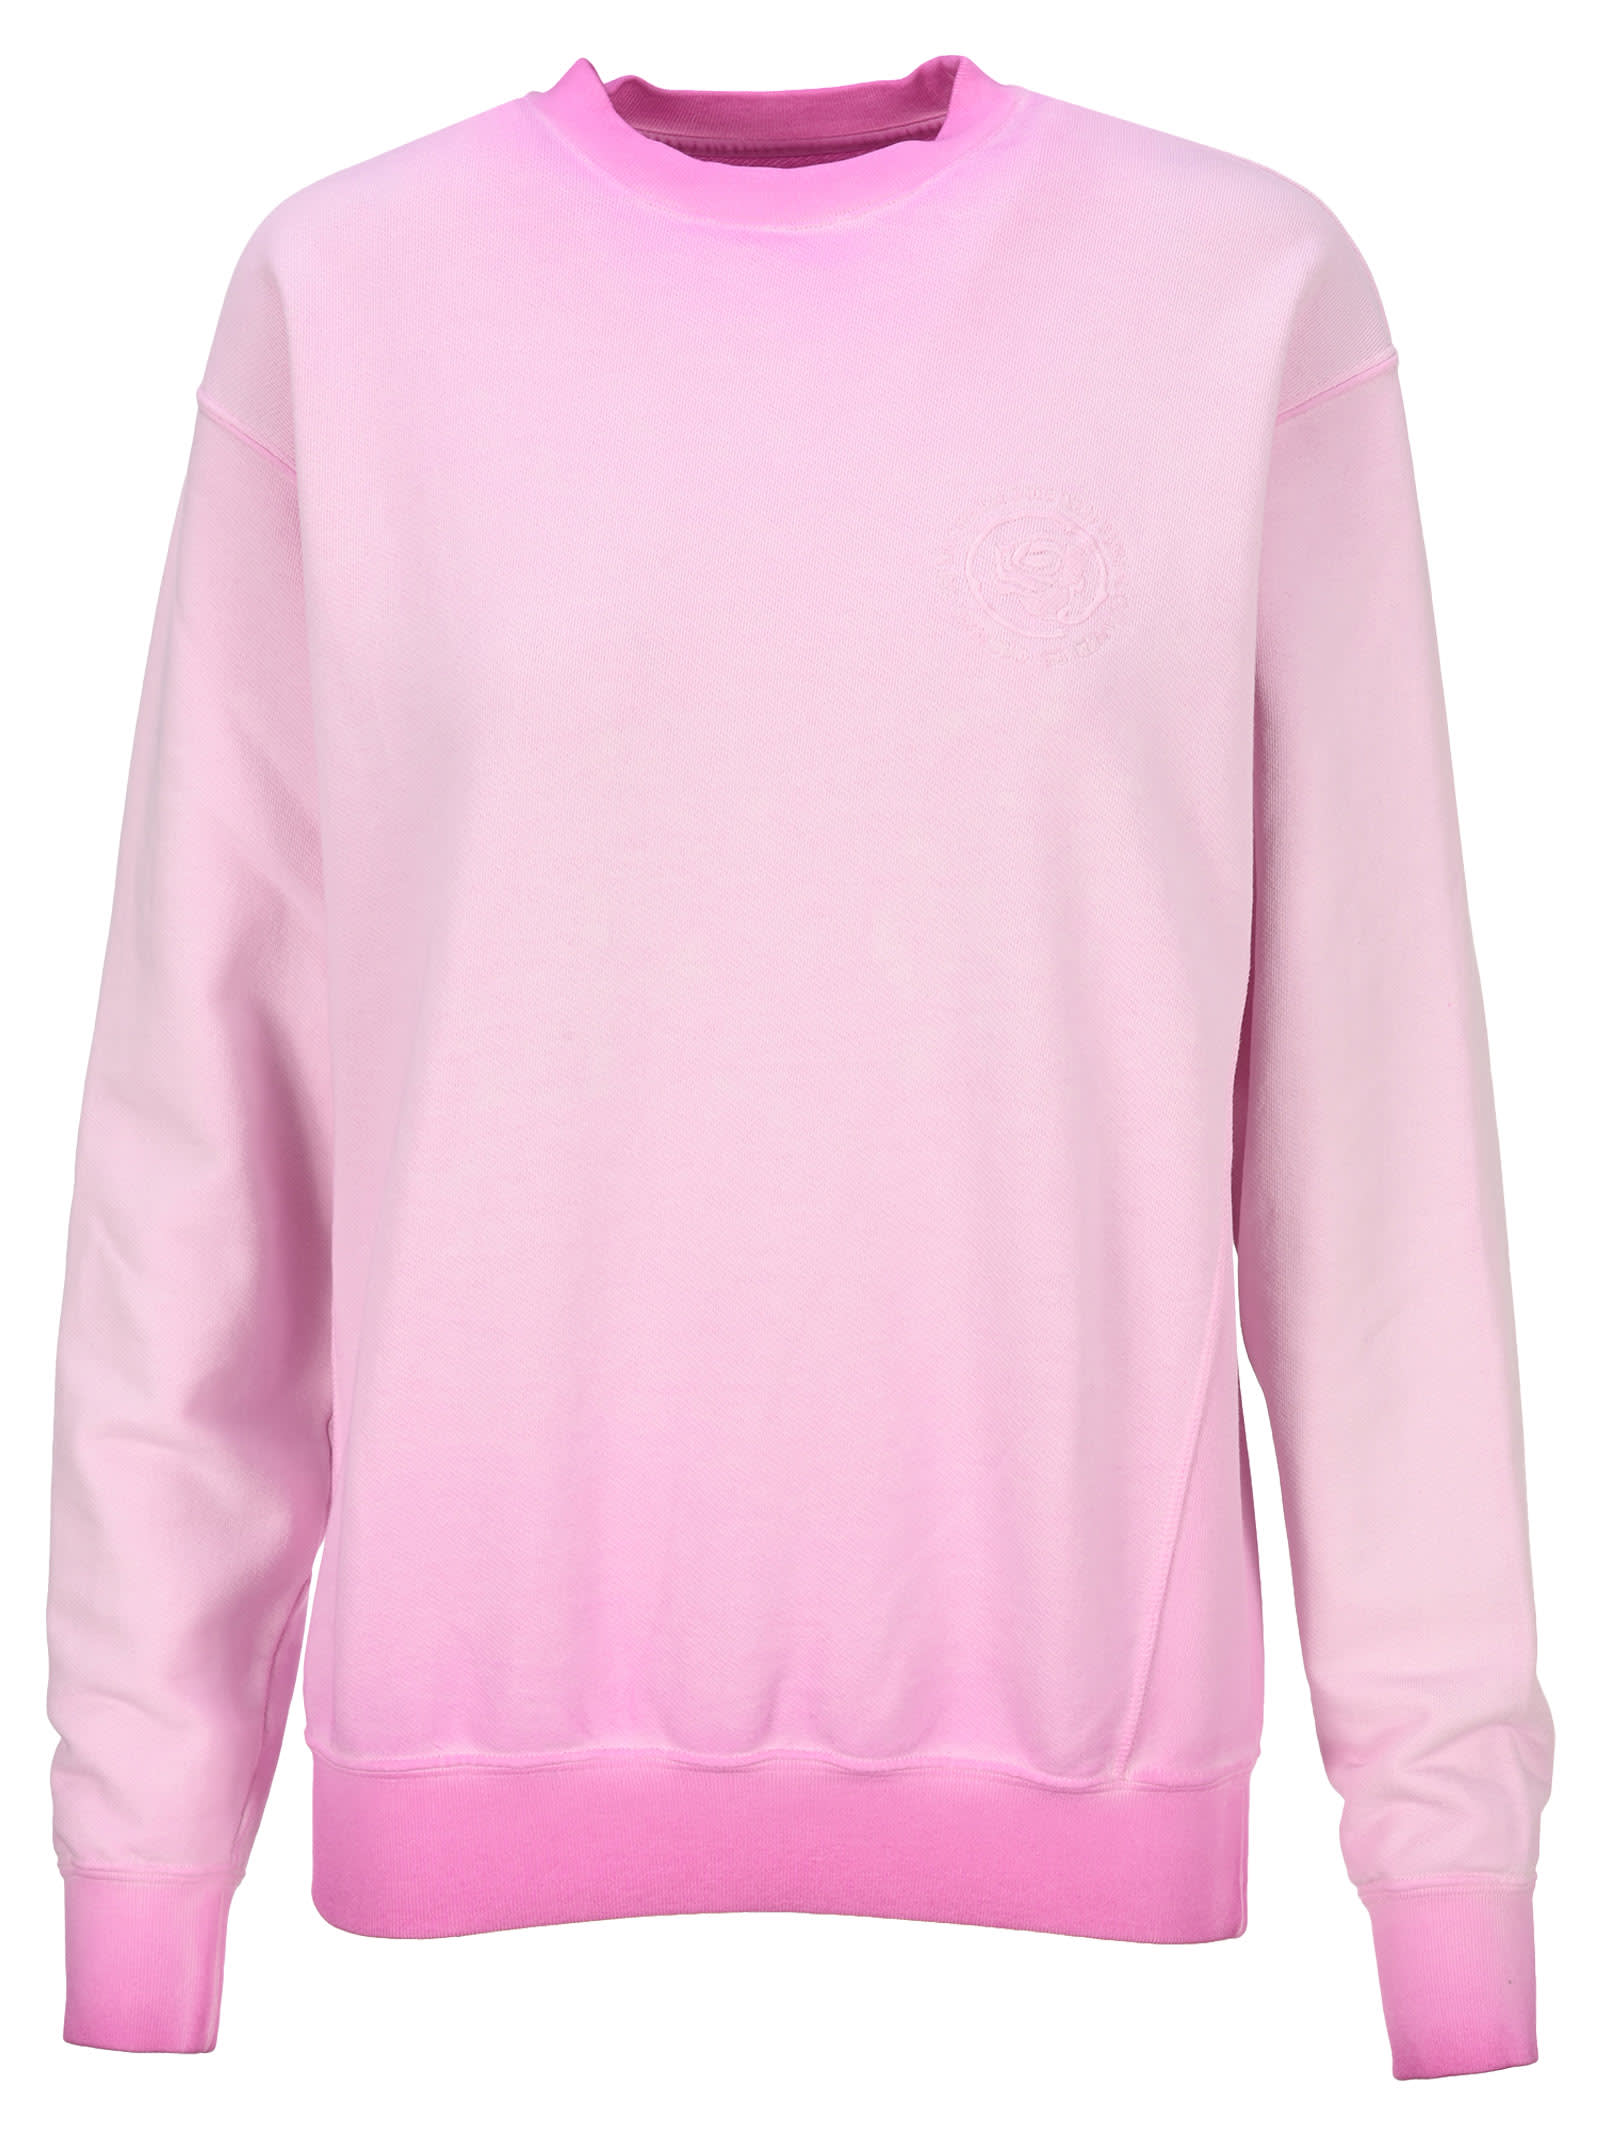 Opening Ceremony FADED PINK ROSE CREST SWEATSHIRT